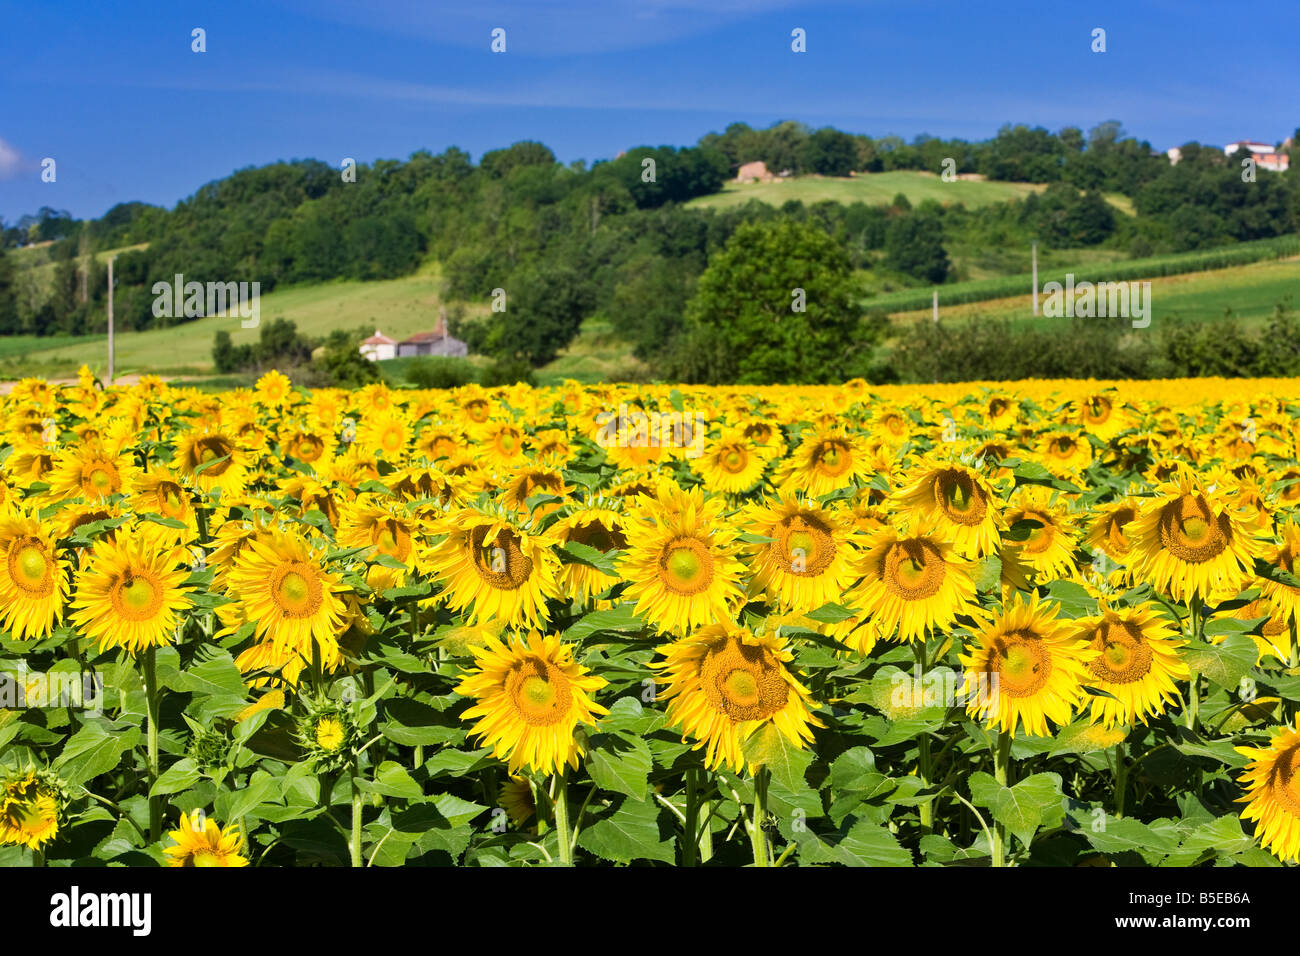 A field of ripe sunflowers in southwest France Europe - Stock Image